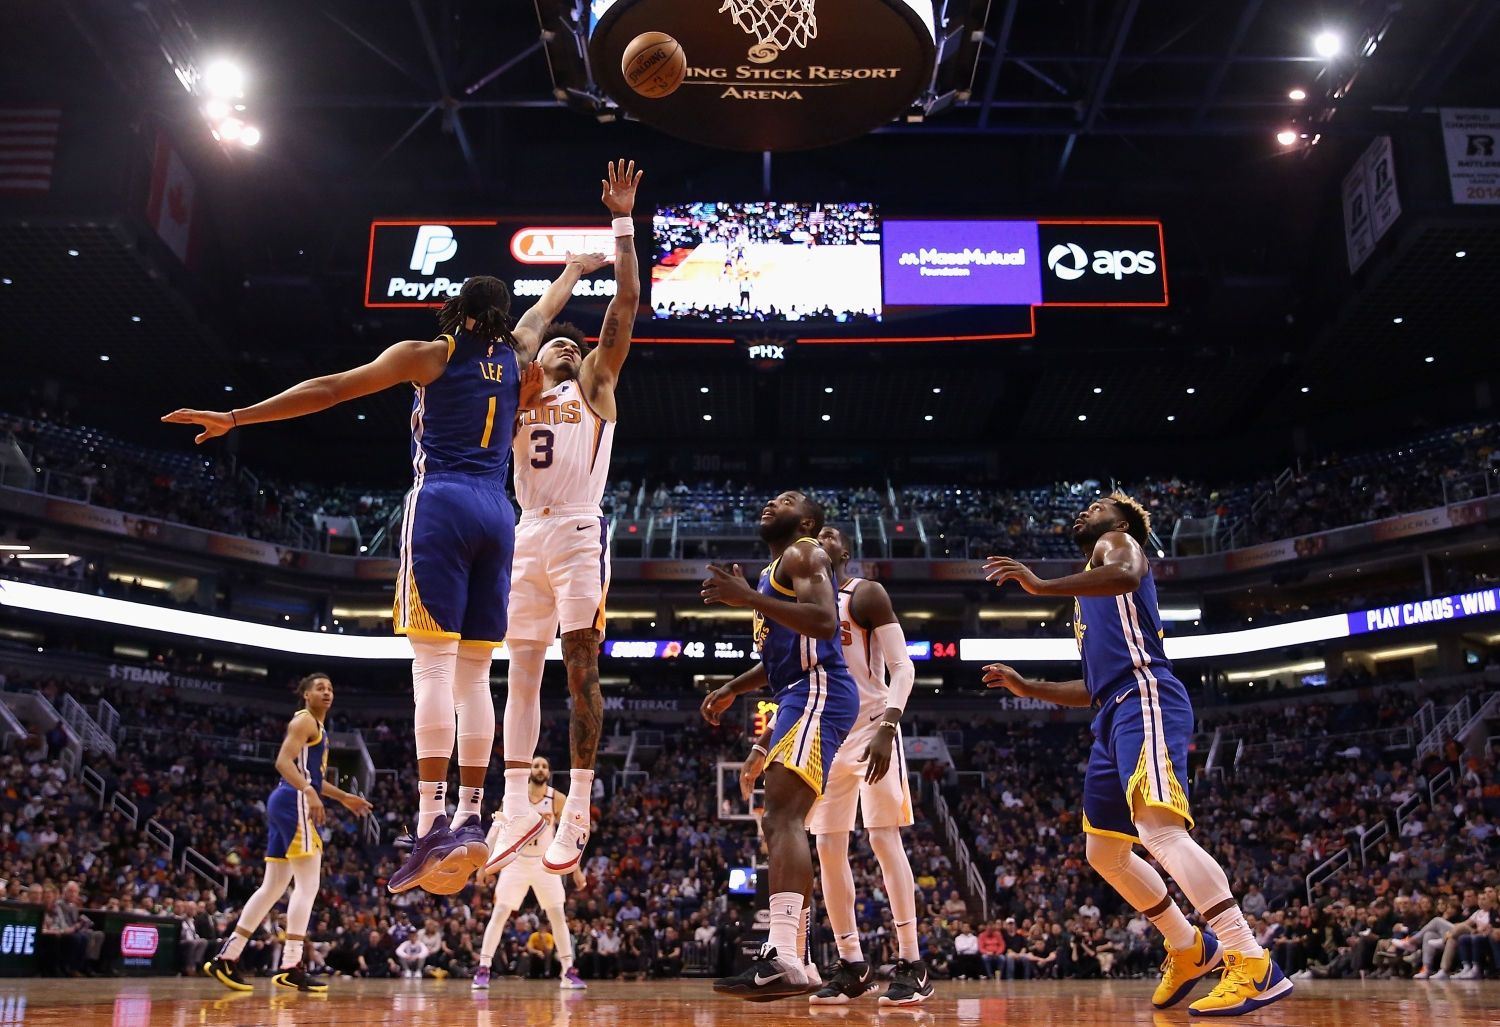 The Warriors will have to pay about $82 million in total to acquire Kelly Oubre Jr. from the Phoenix Suns due to the luxury tax implications of adding his $14 million salary.